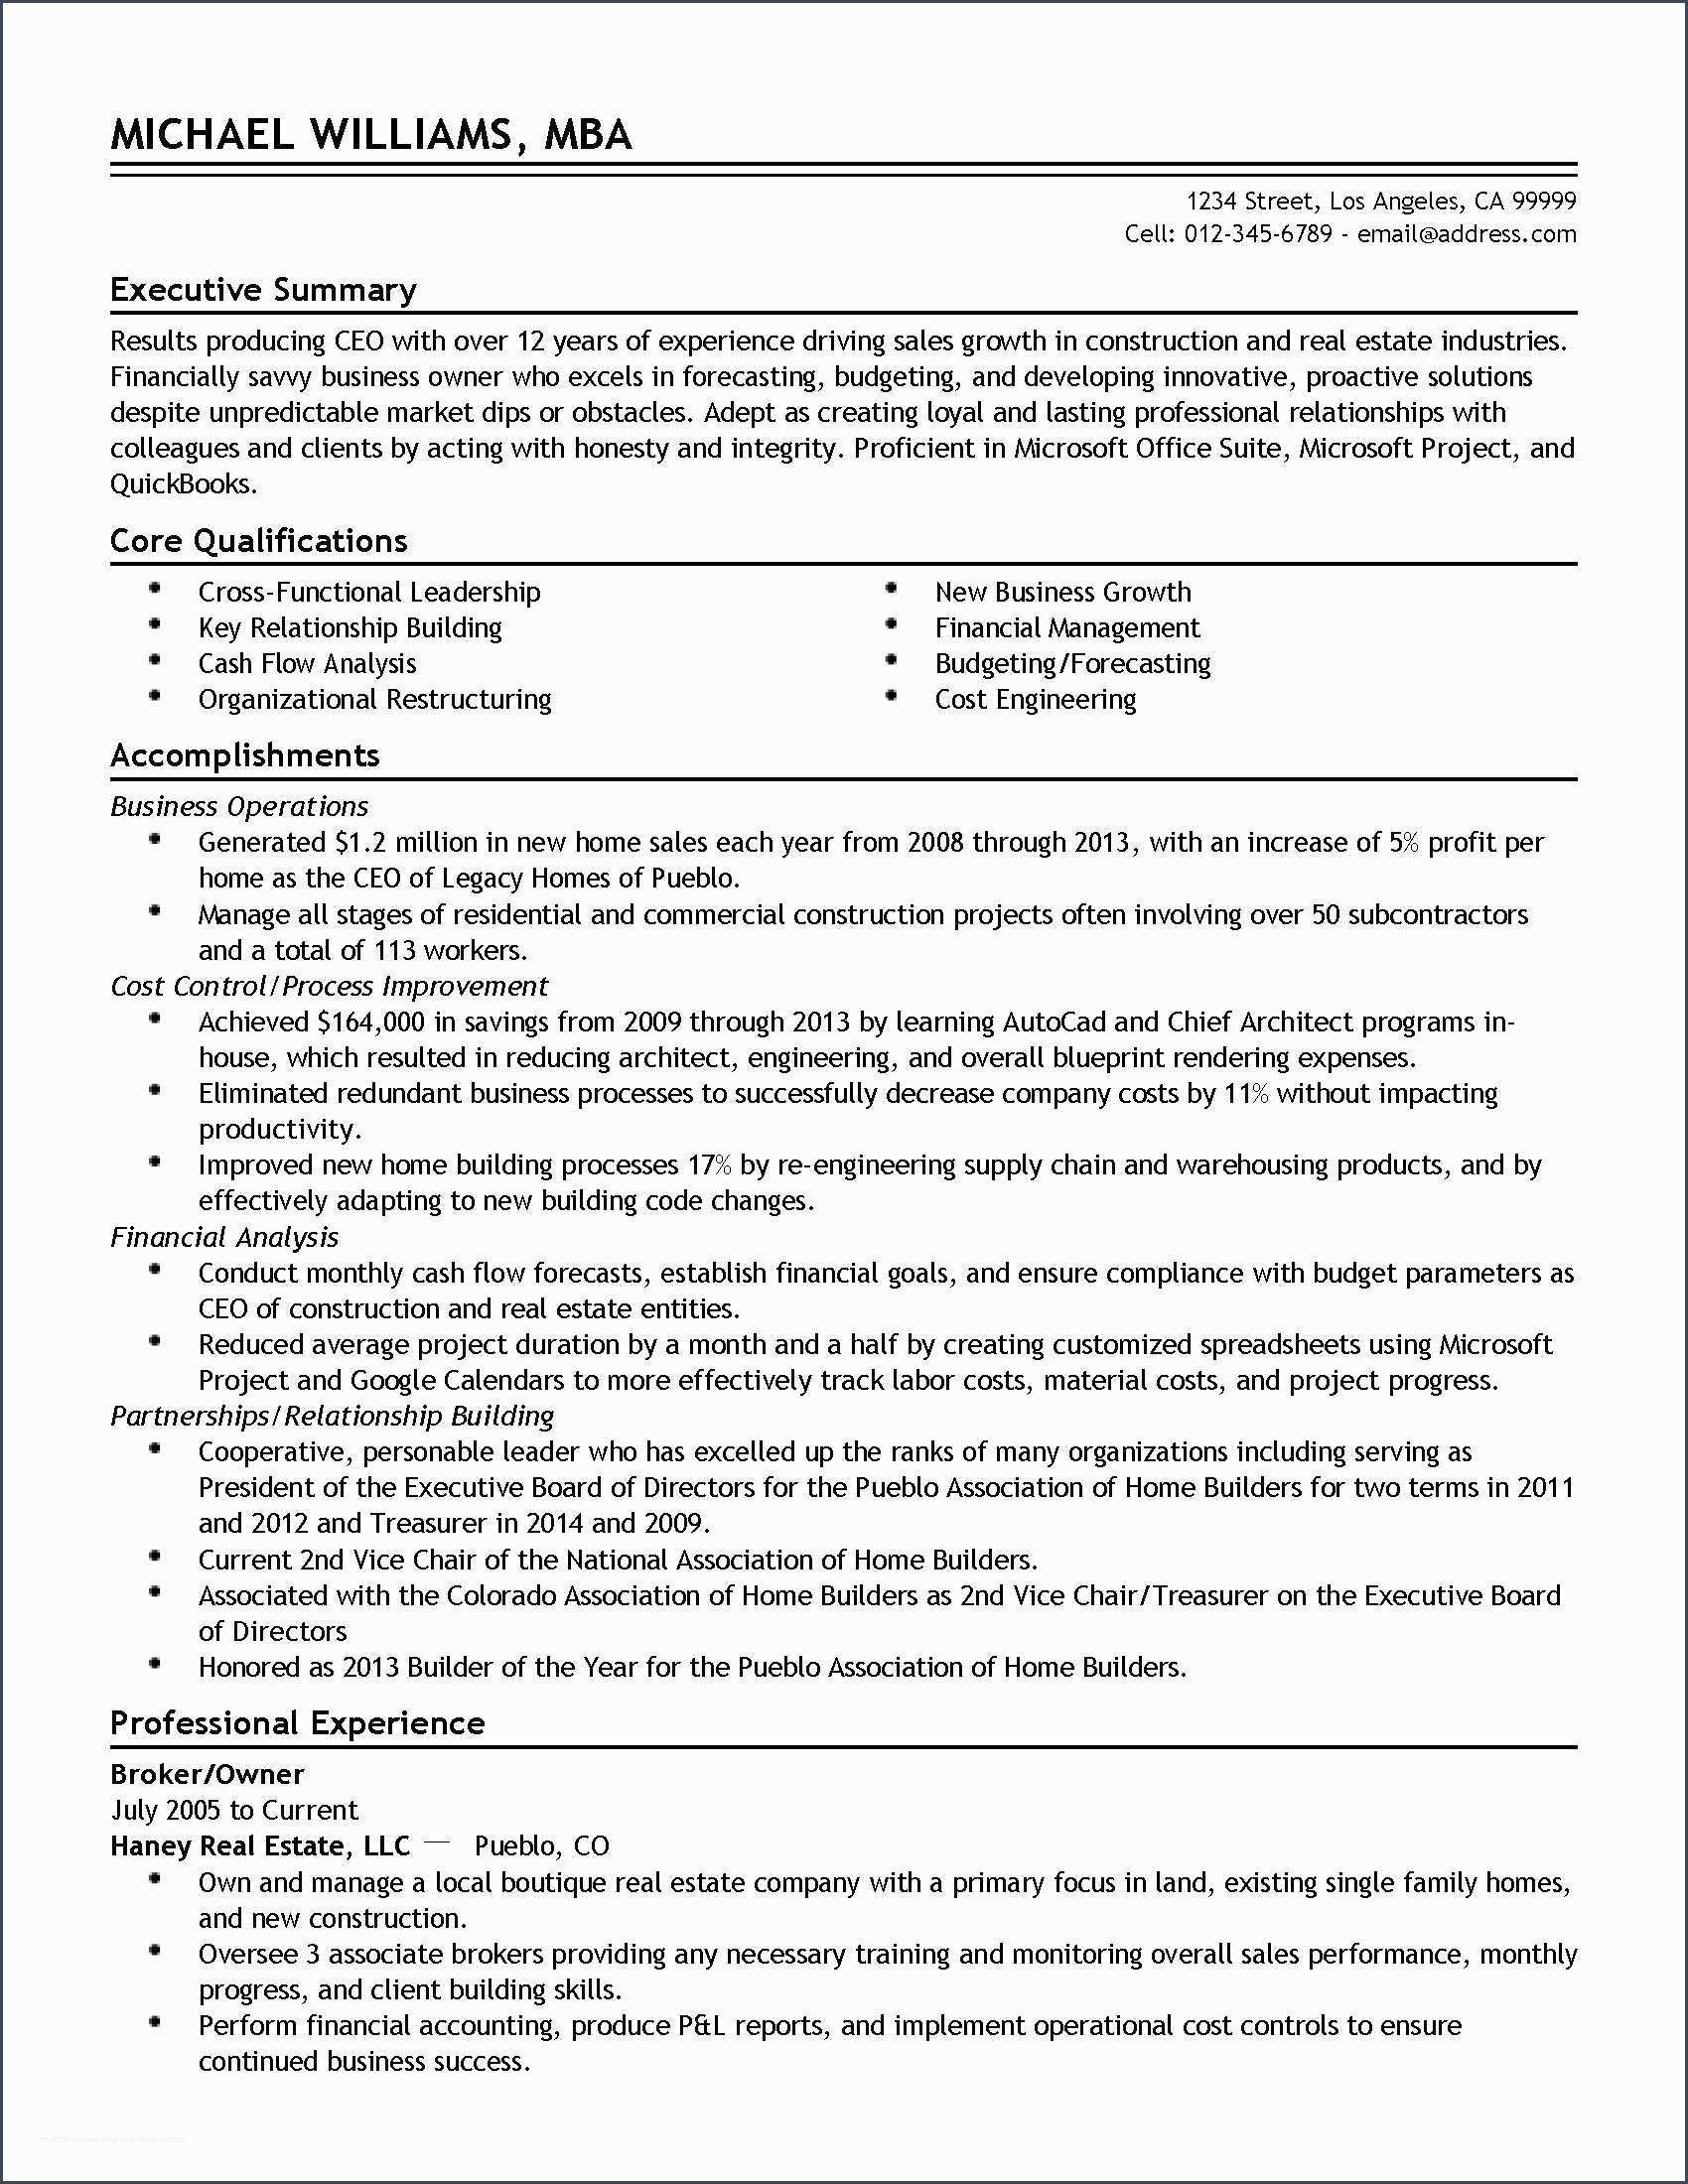 Awesomesmall business owner resume sample